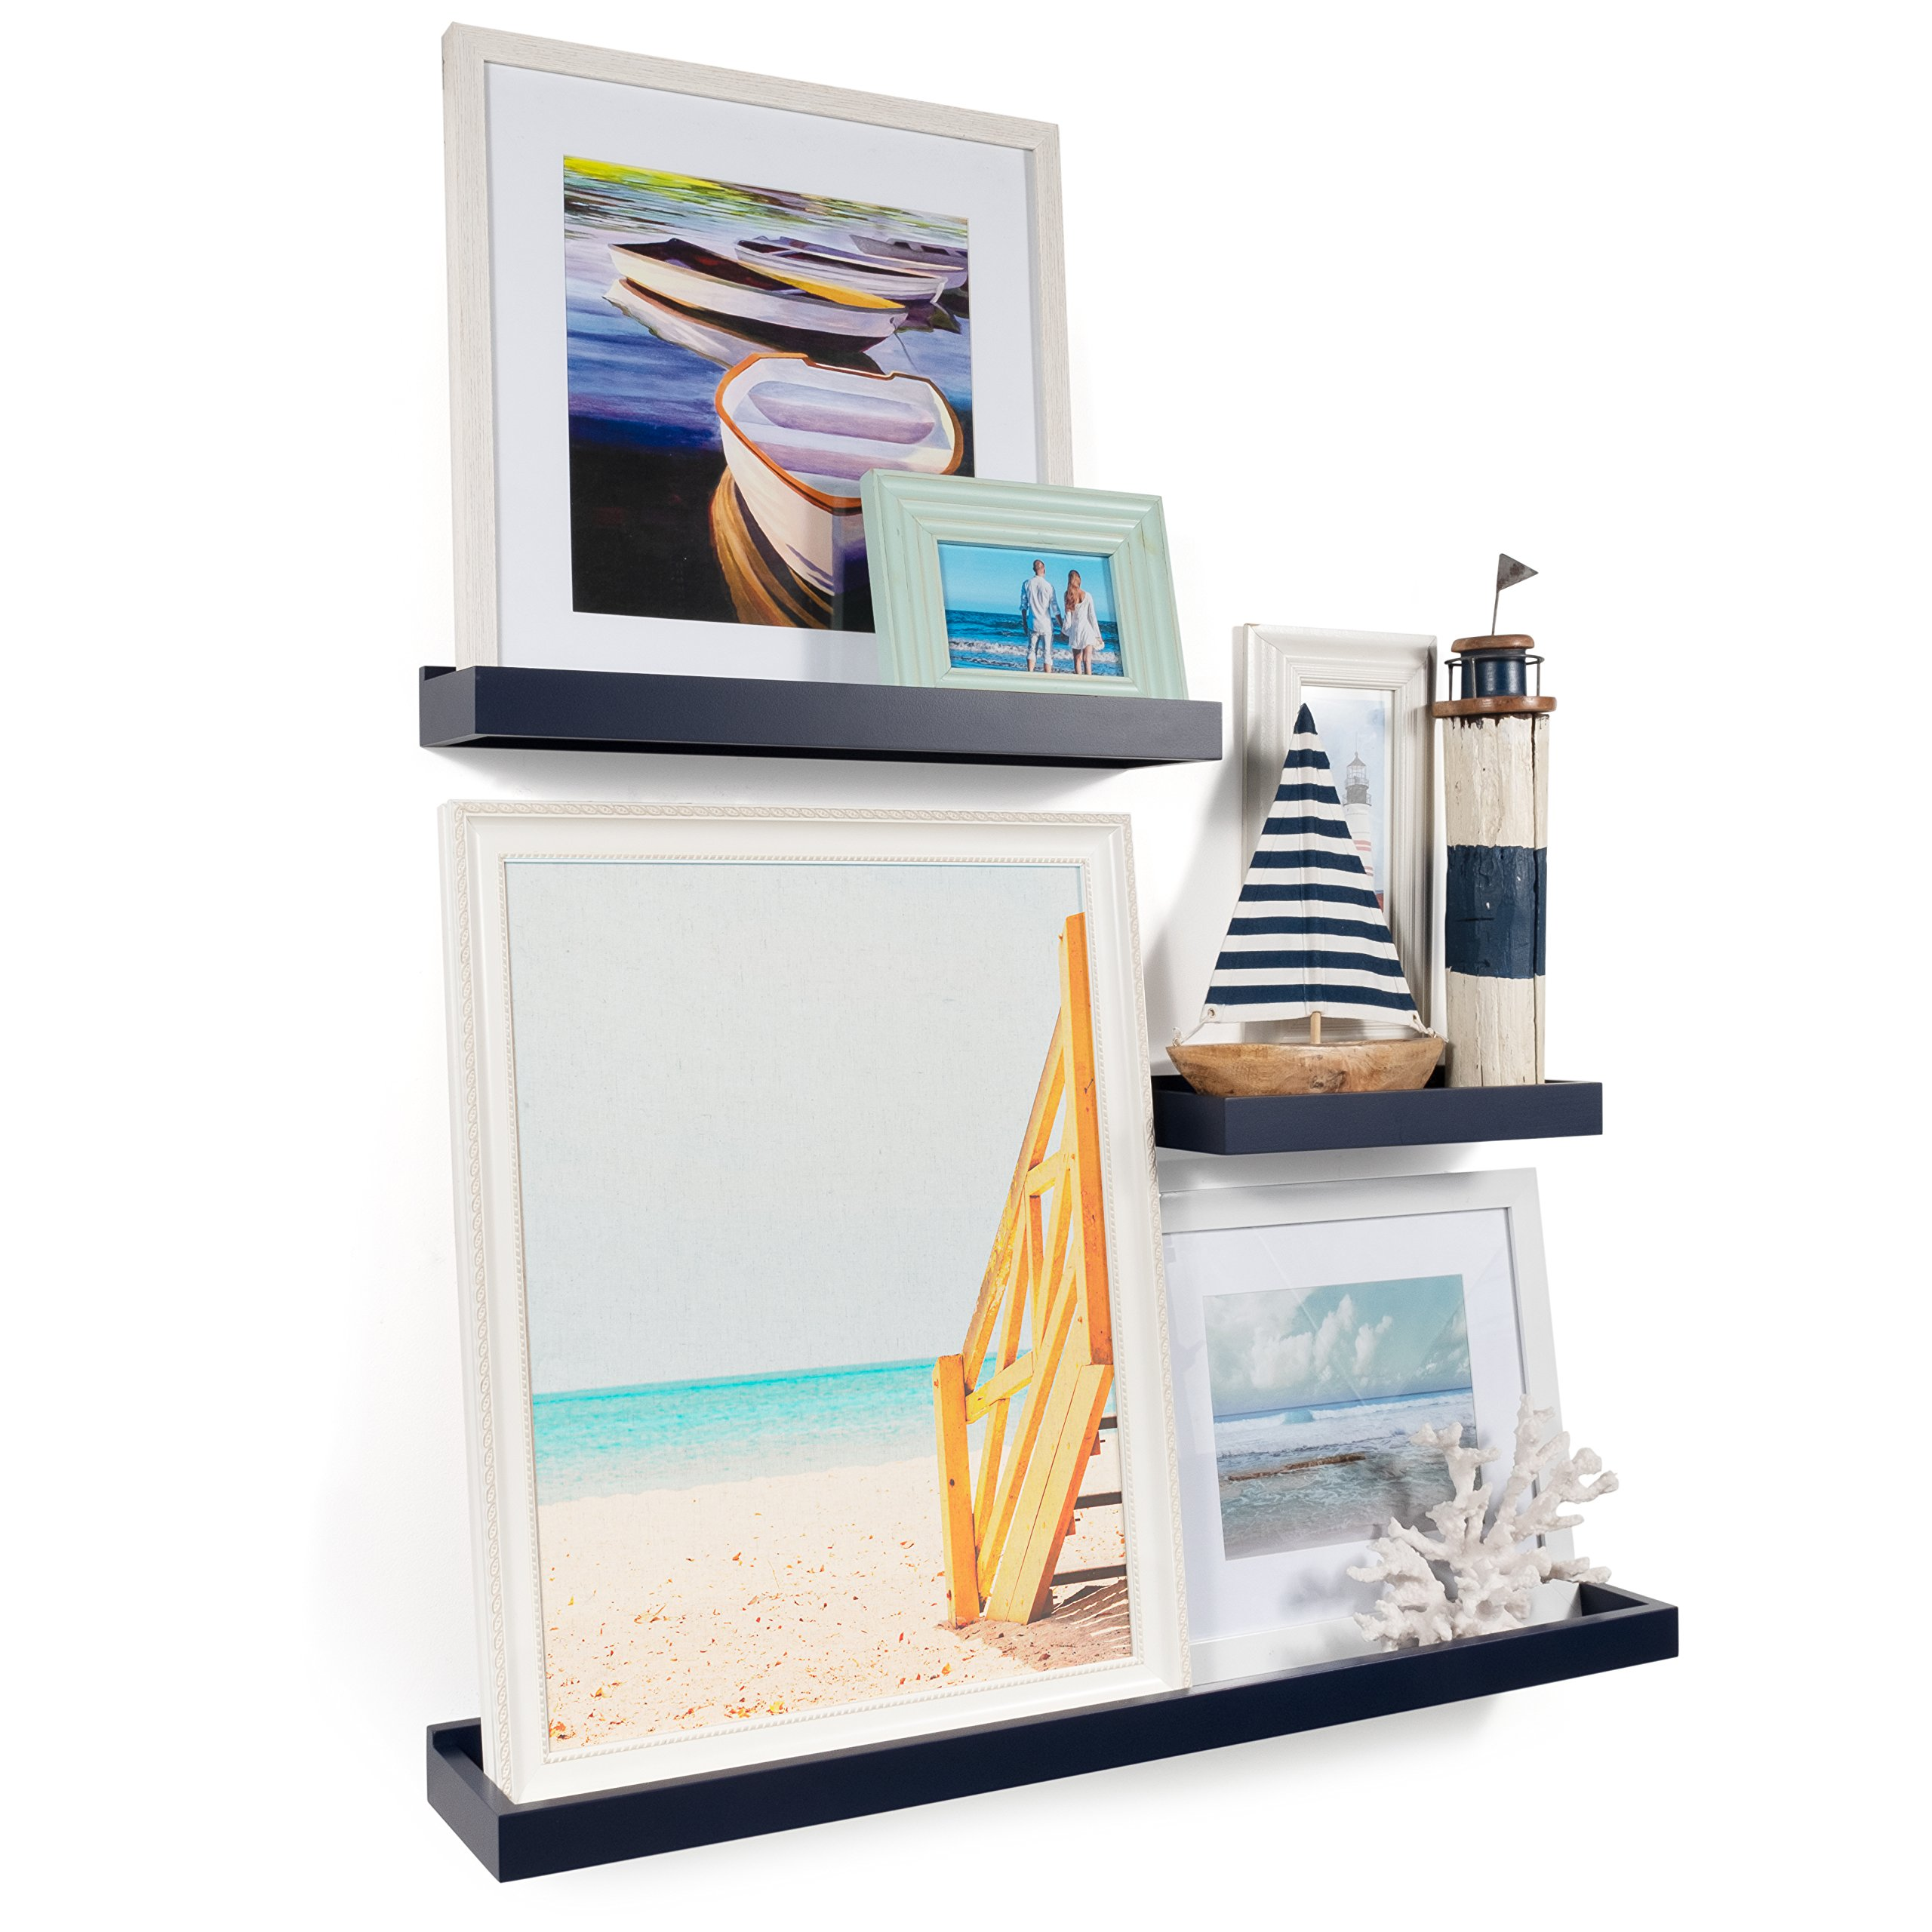 Wallniture Philly 3 Floating Trays Bookshelves and Display Bookcase – Varying Sizes Modern Wood Shelving Units Ledge for Living Room Kids Bedroom & Nurseries – Navy Wall Mounted Storage Wall Shelves